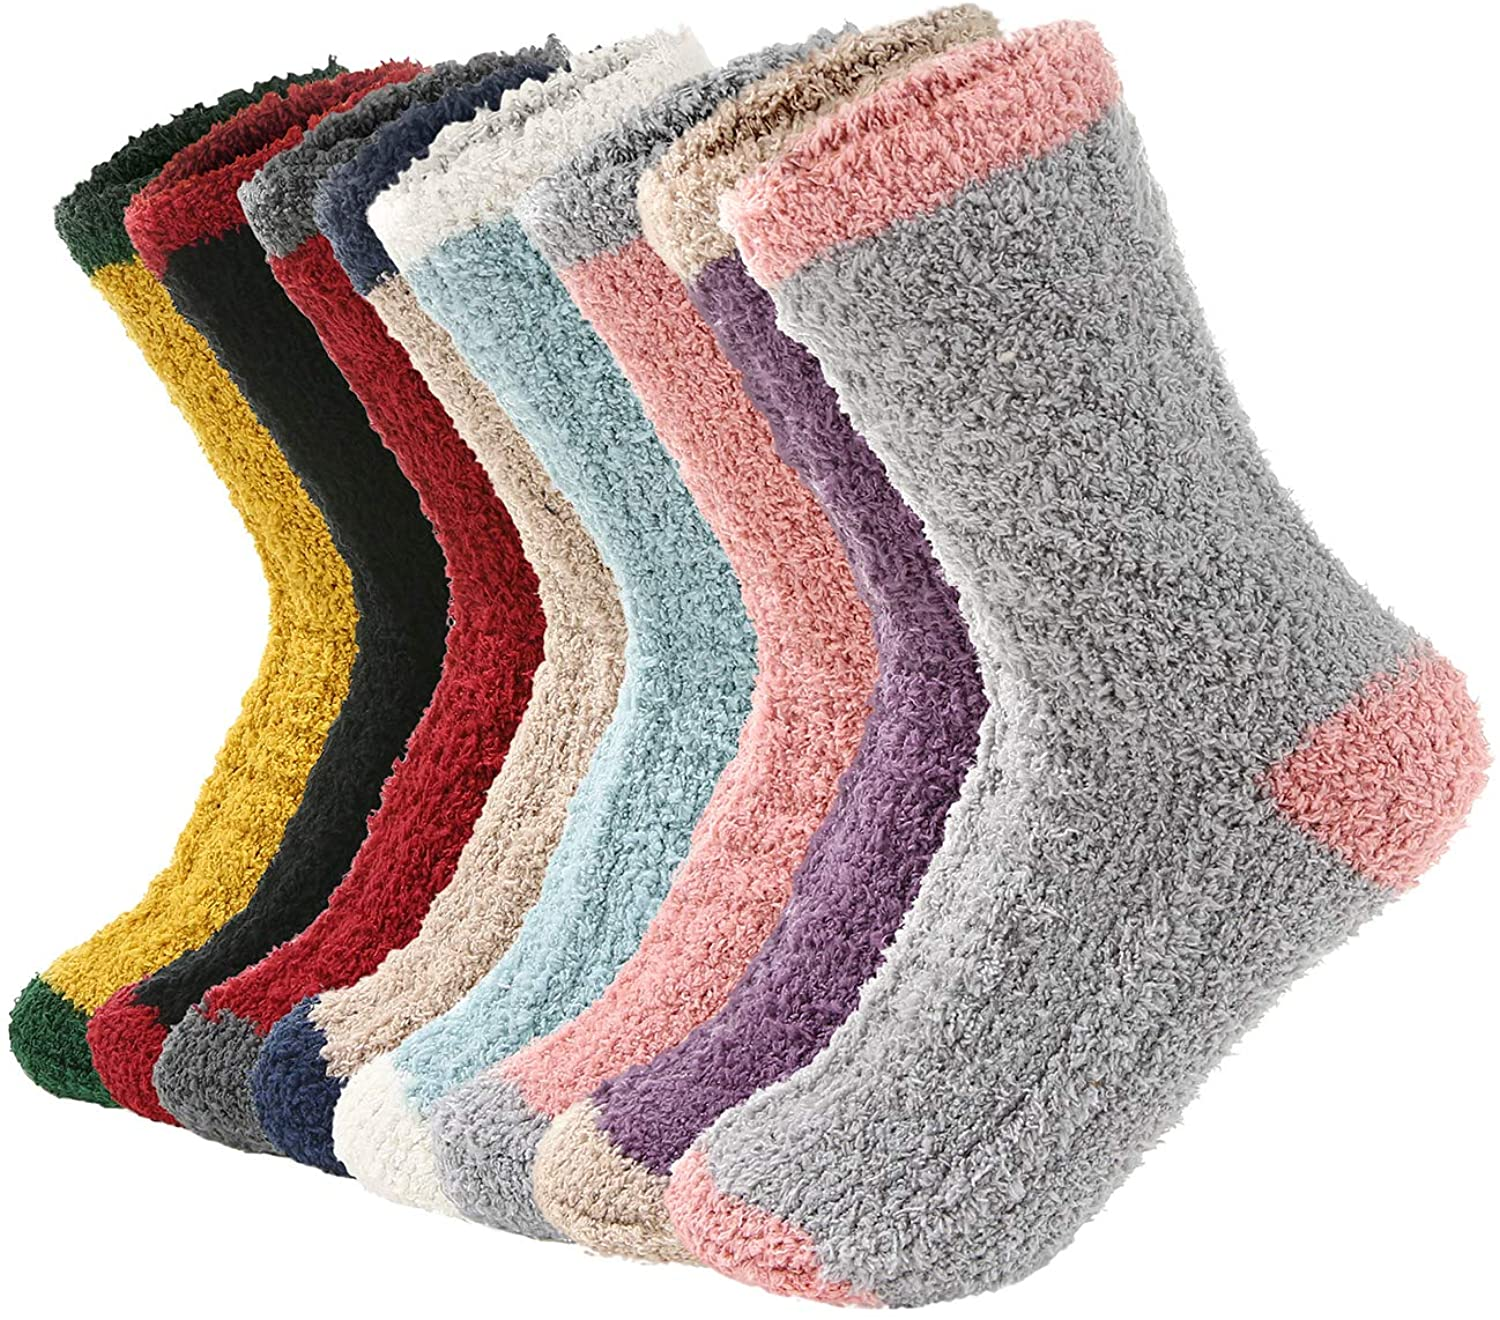 Womens Socks Warm Fluffy Fuzzy Athletic Socks Cute Cozy Socks Fall Winter Fleece Sleeping Socks